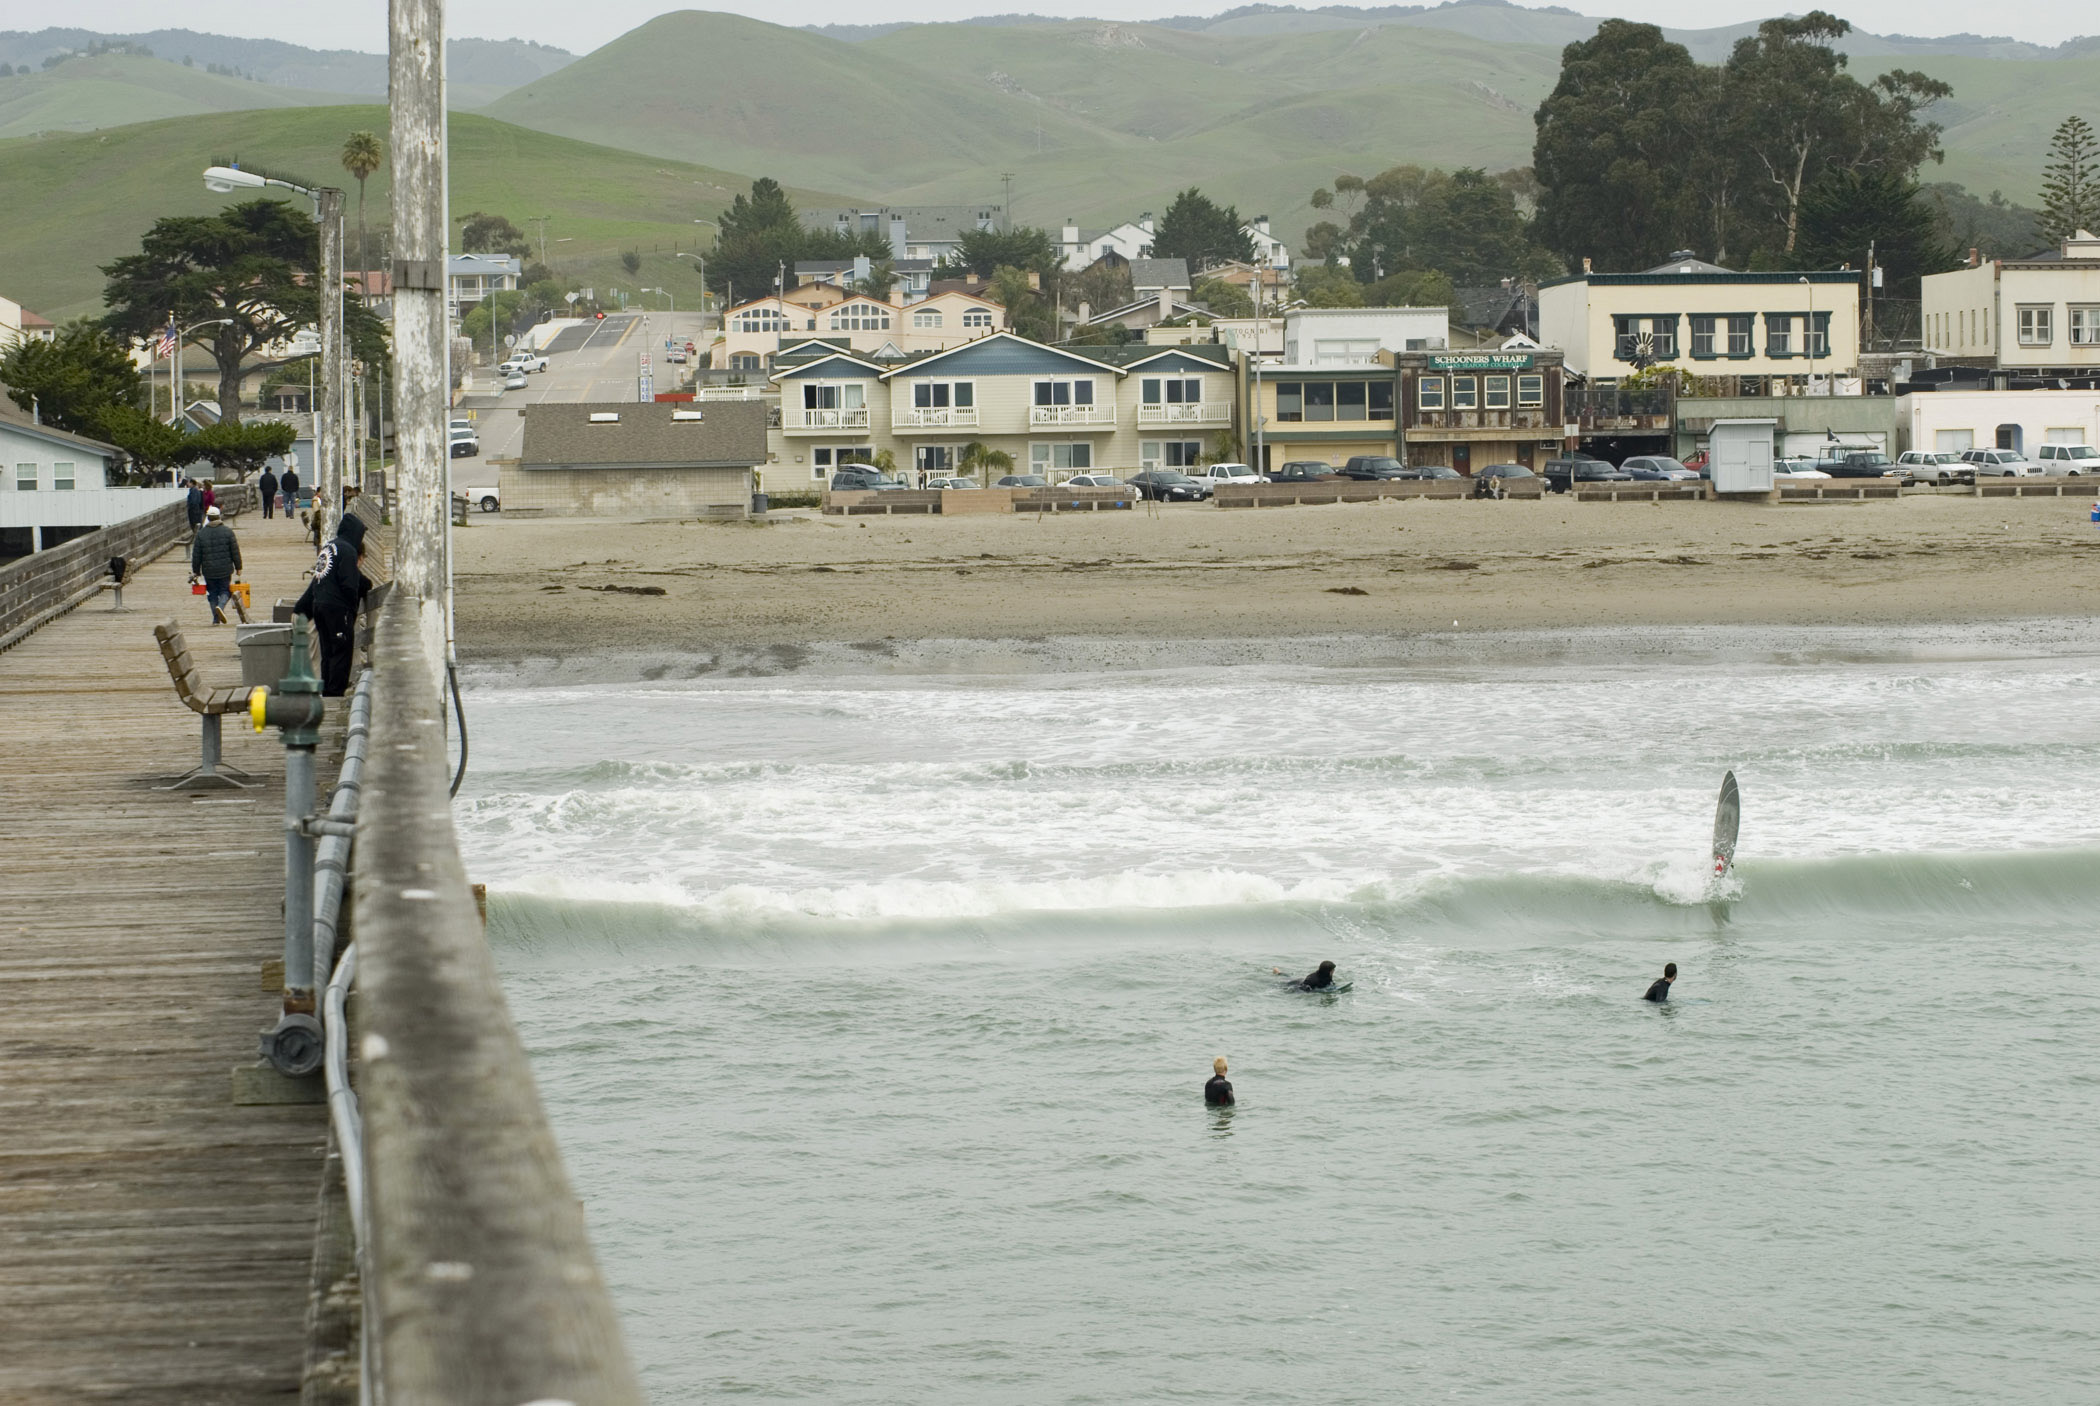 View along the wooden jetty or pier in Cayucos State Beach Park looking towards the beach with surfers in the water below